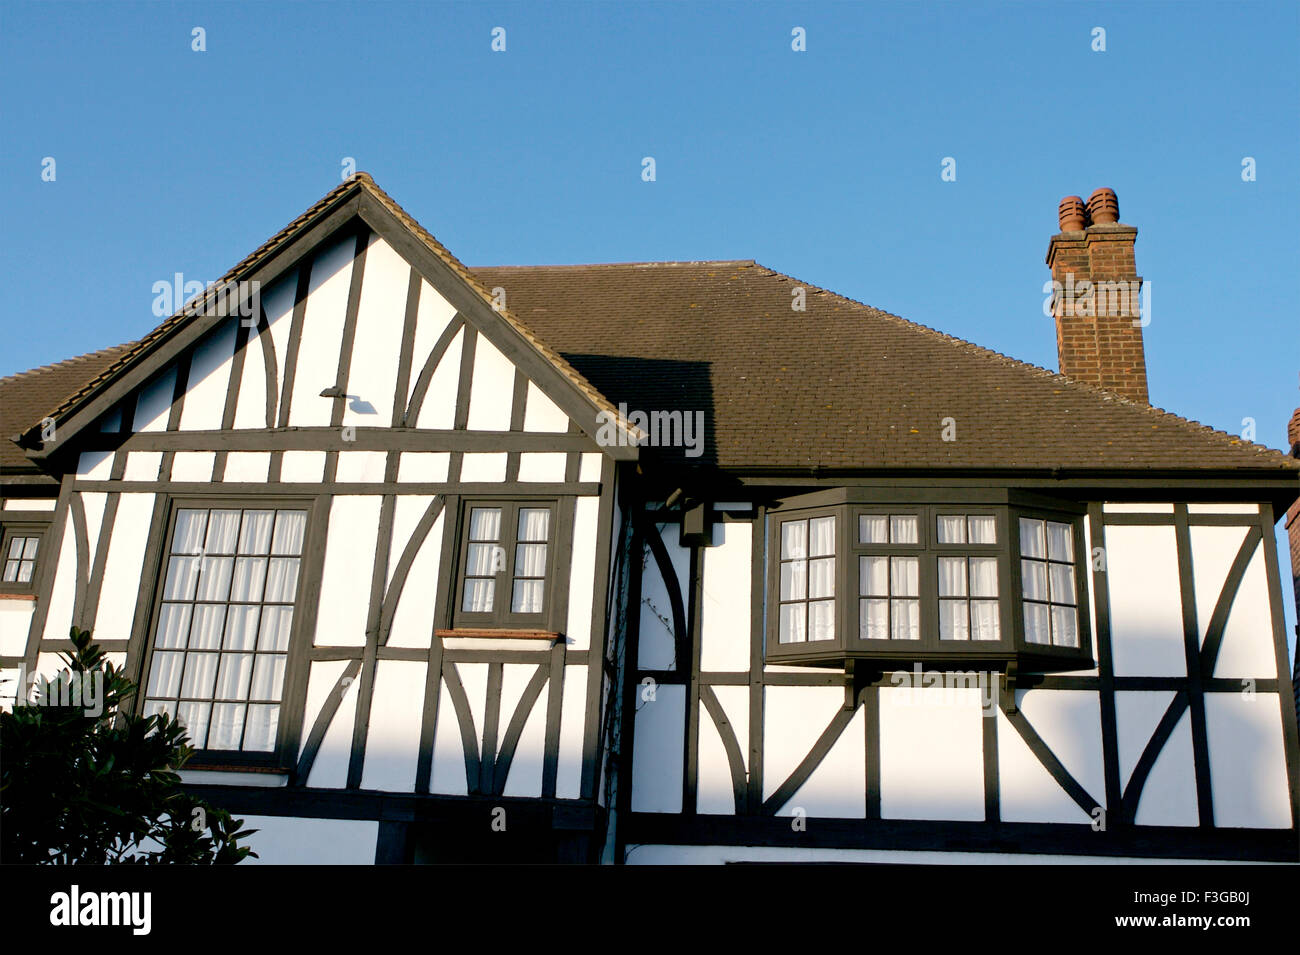 House With White Walls And Black Window And Brown Roof